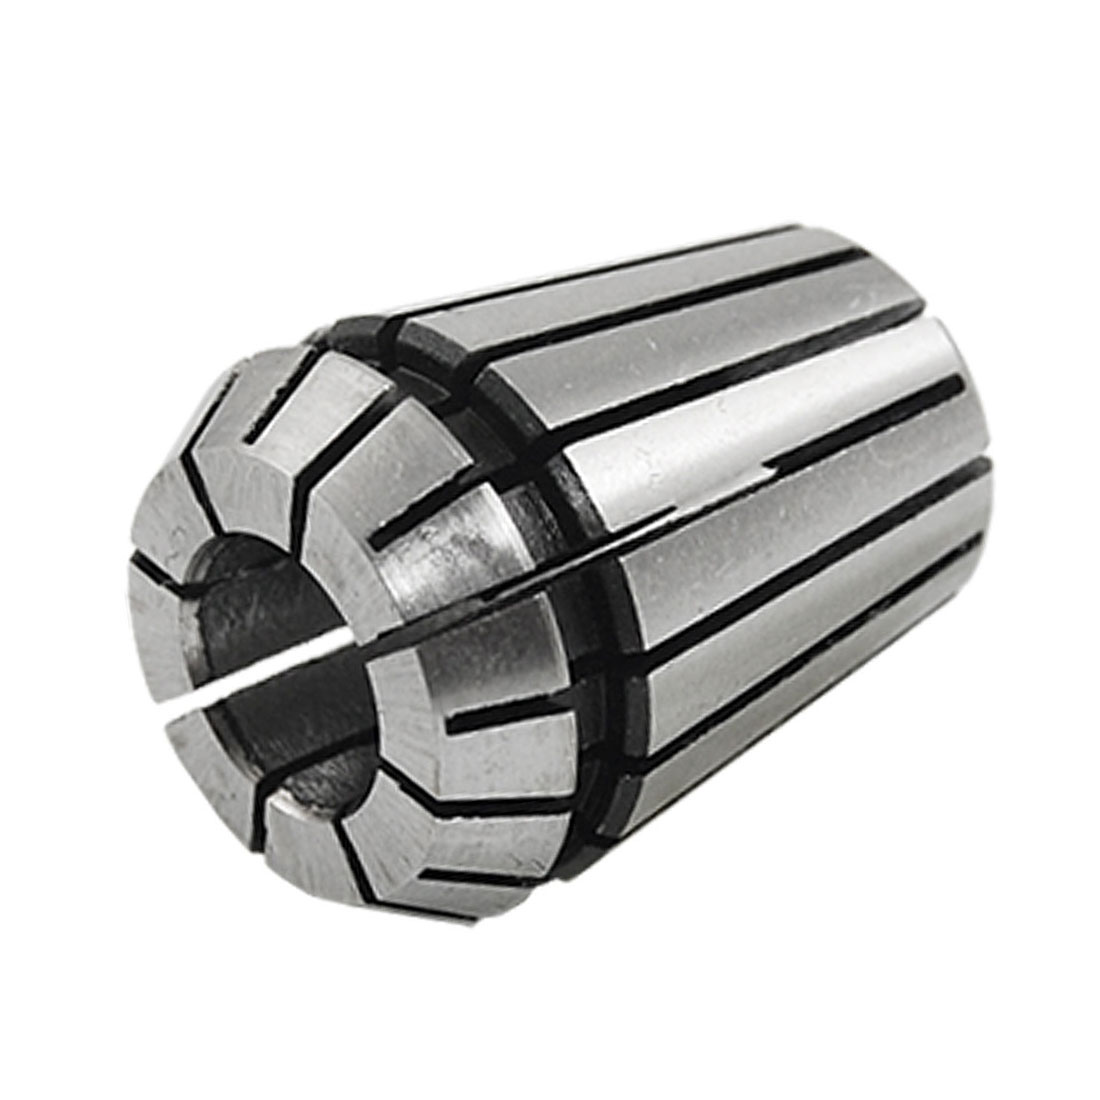 Machine Clamp Chuck Stainless Steel 12-11mm Clamping Diameter Range Spring Collet Chuck ER25-12